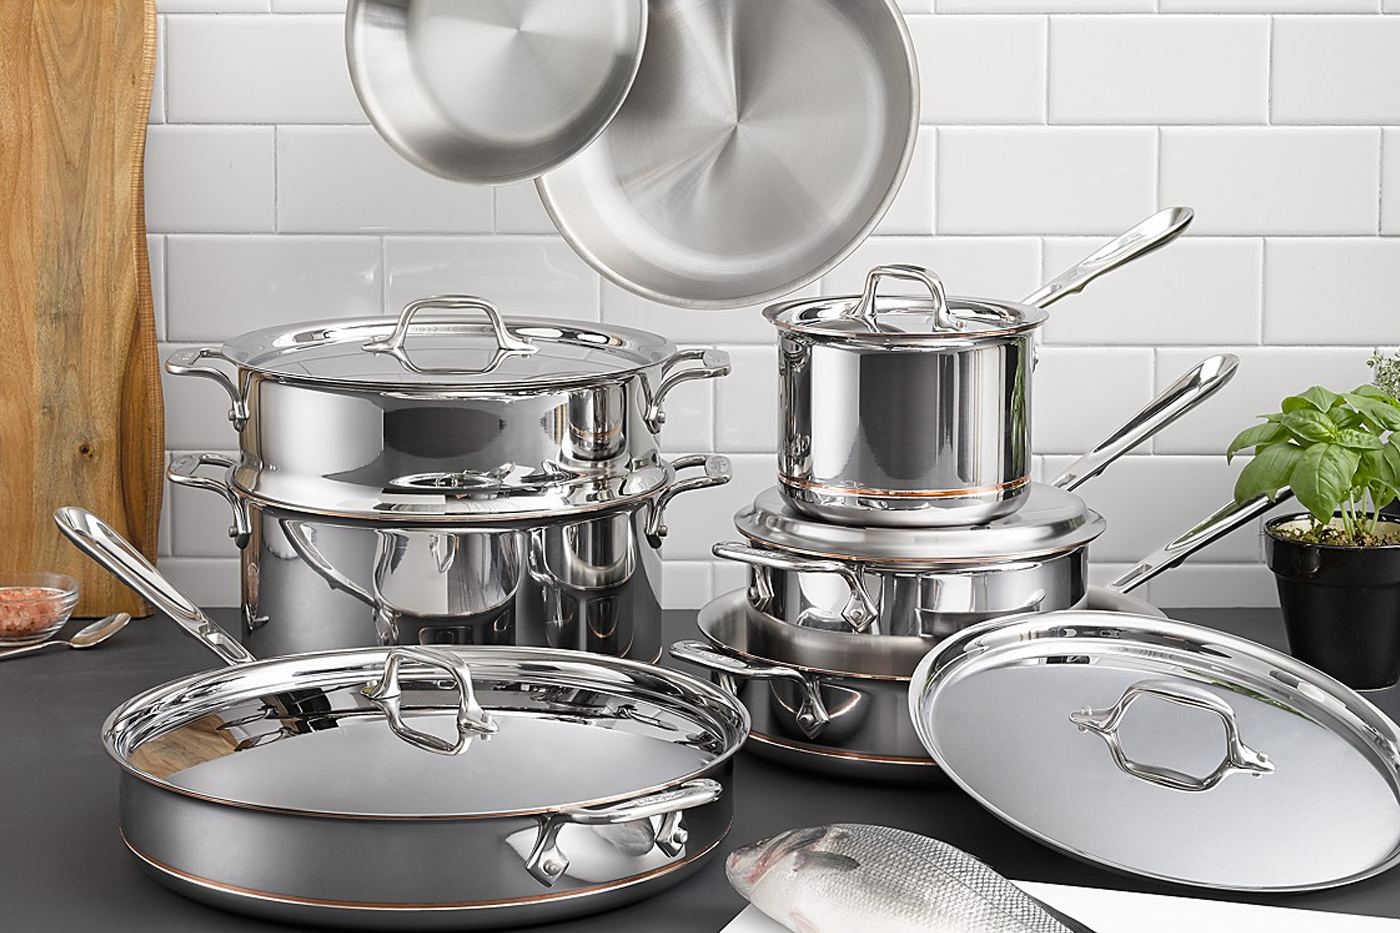 All Clad pots and pans BIFL